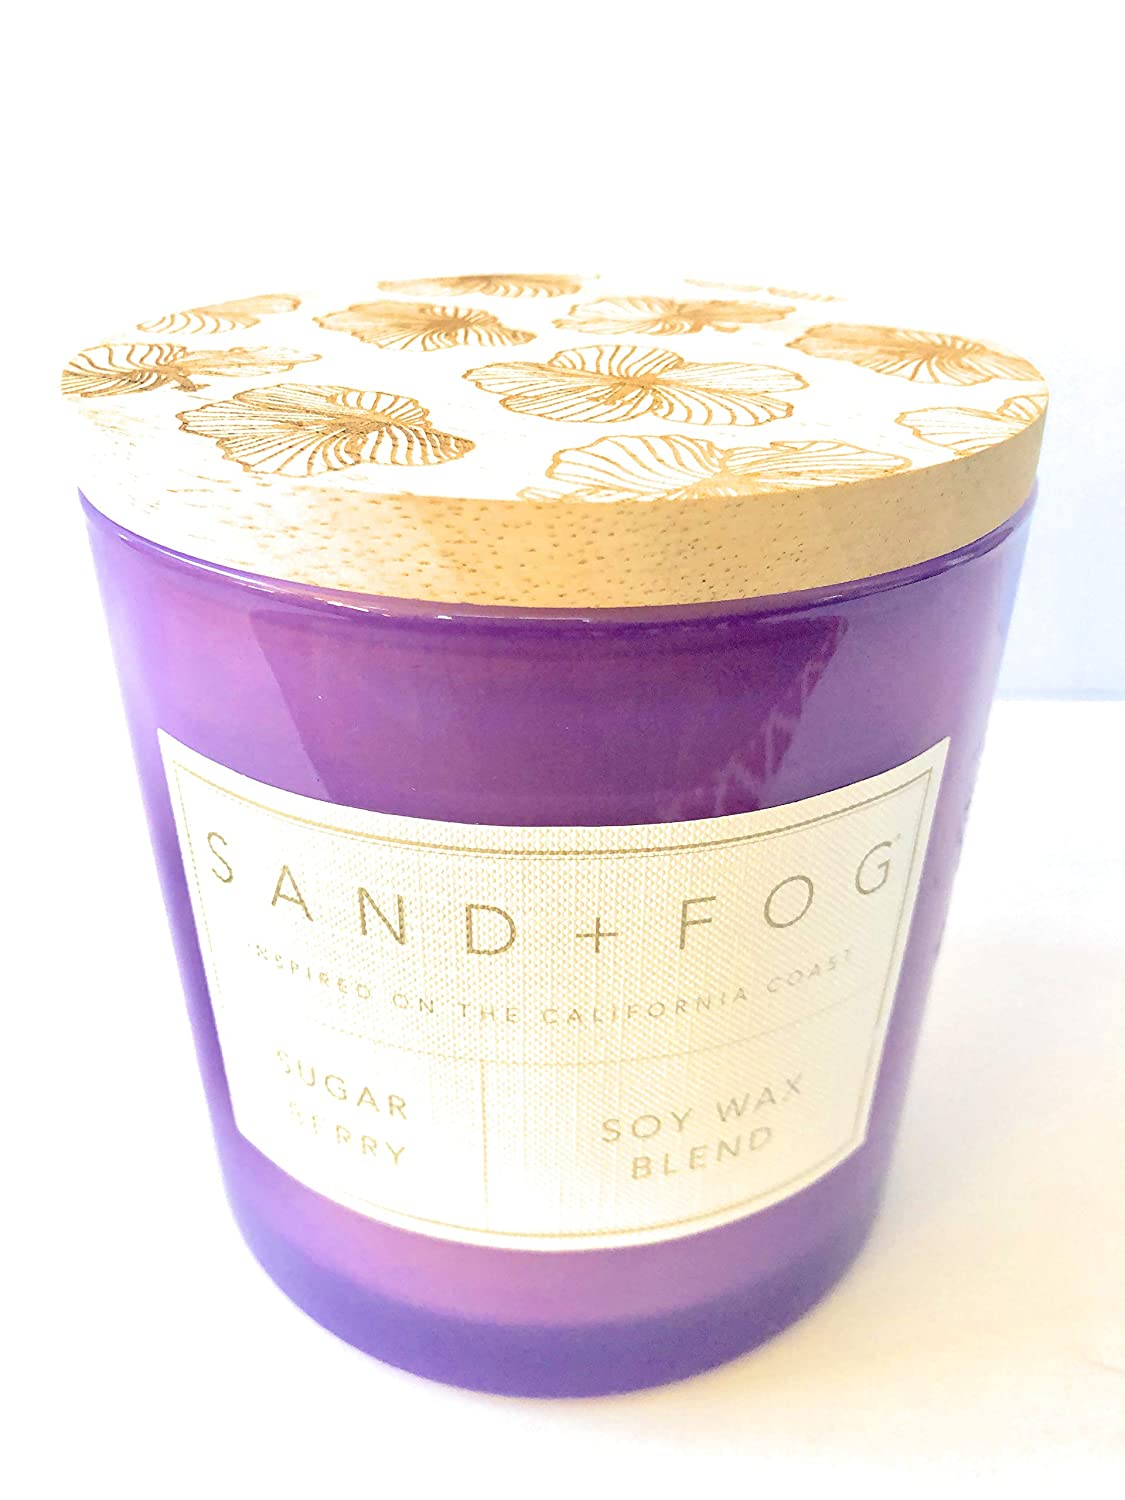 Sand /& Fog Large Sugar Berry Soy Wax Triple Wick Candle with Lid 25 Oz